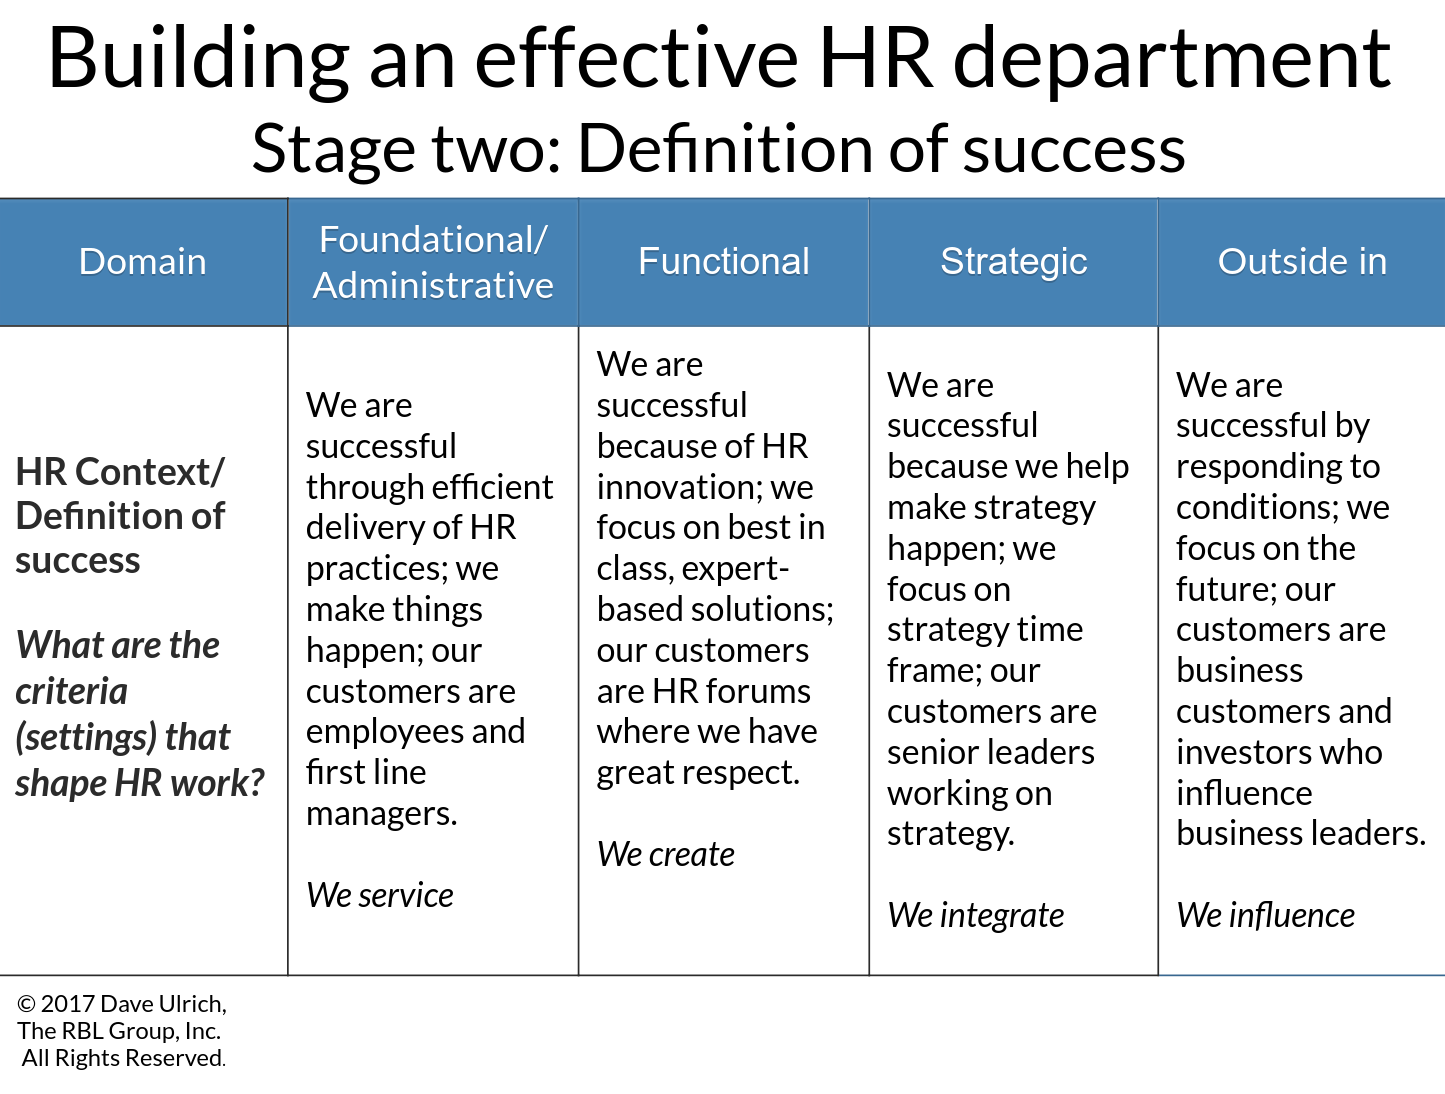 Effective HR department Stage two success